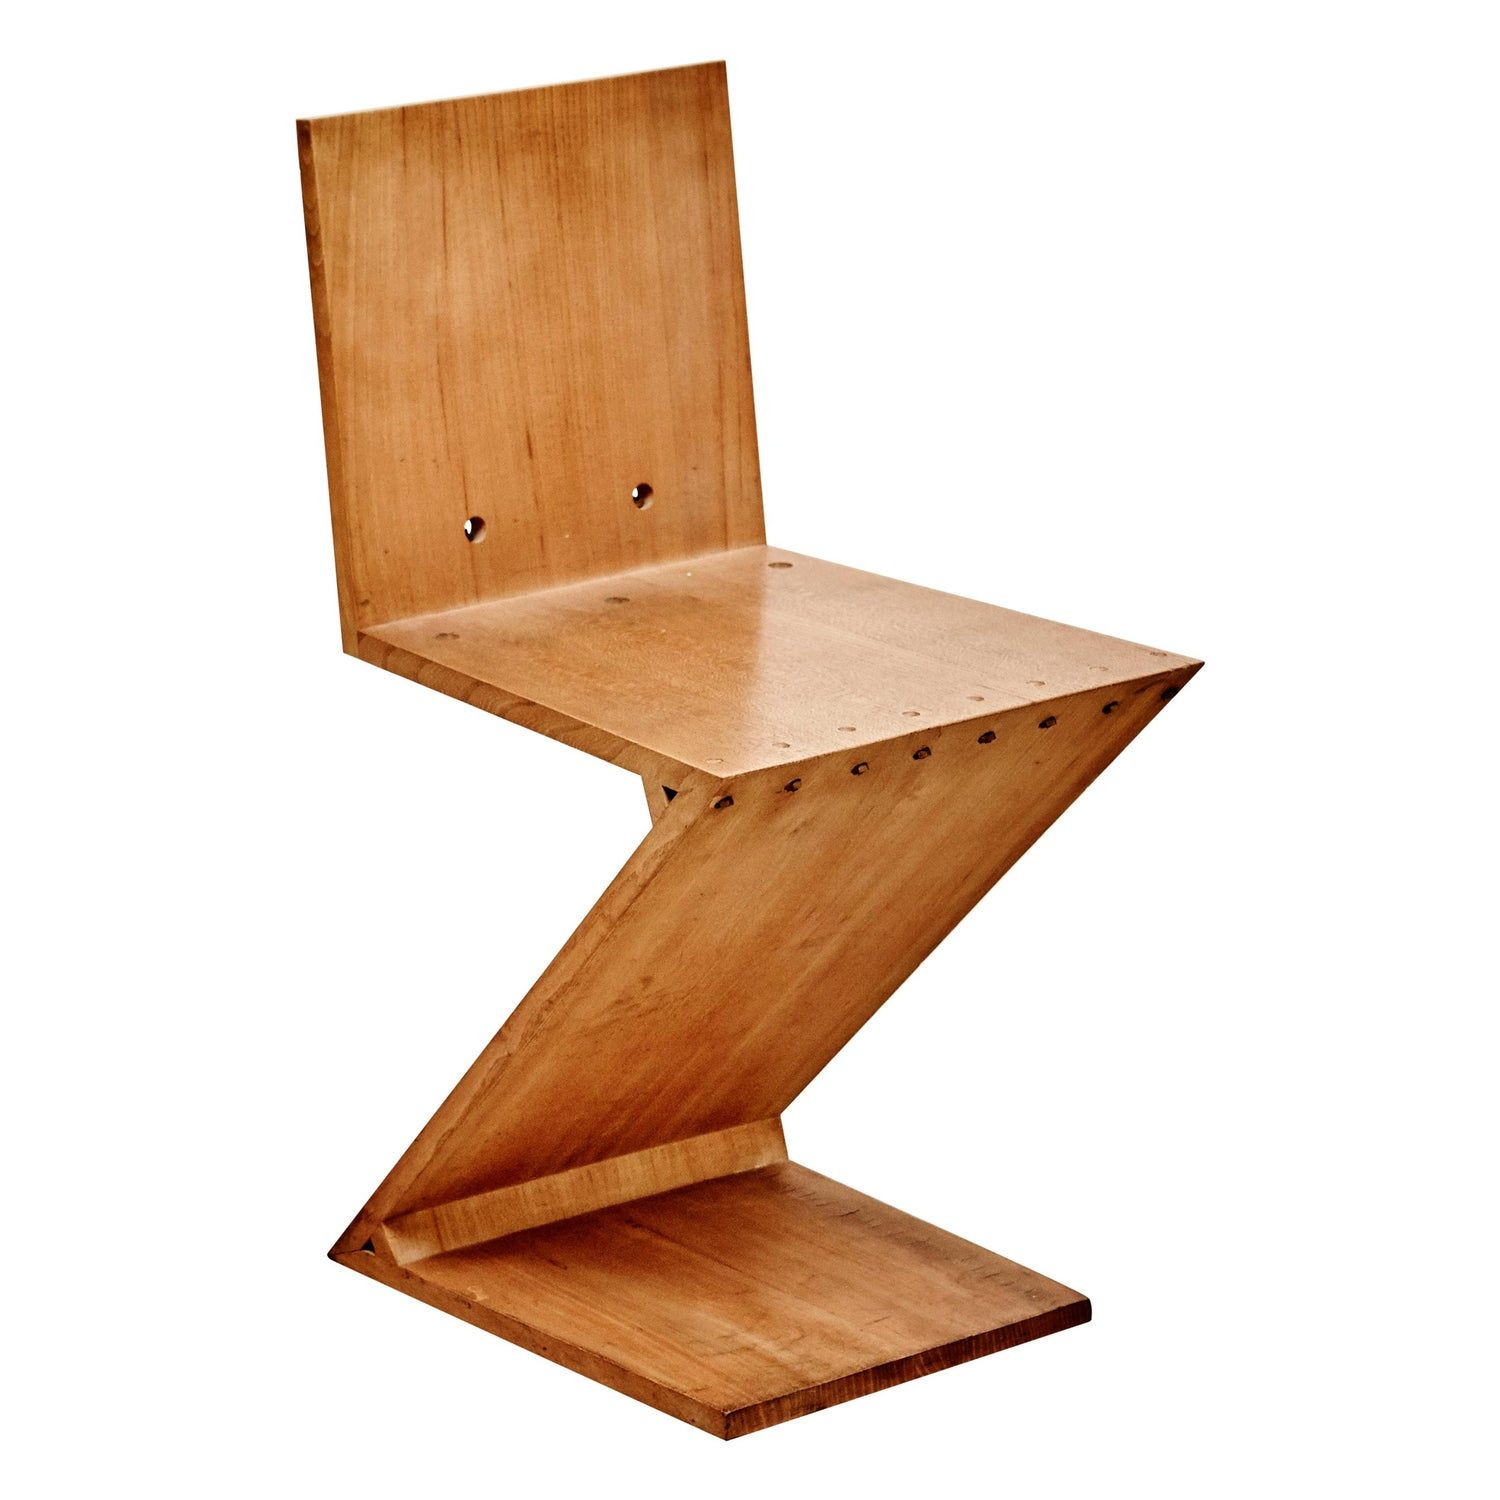 Gerrit Rietveld Mid Century Modern Wood Zig Zag Chair For Metz And Co 1968 In 2020 Dutch Furniture Mid Century Modern Wood Chair